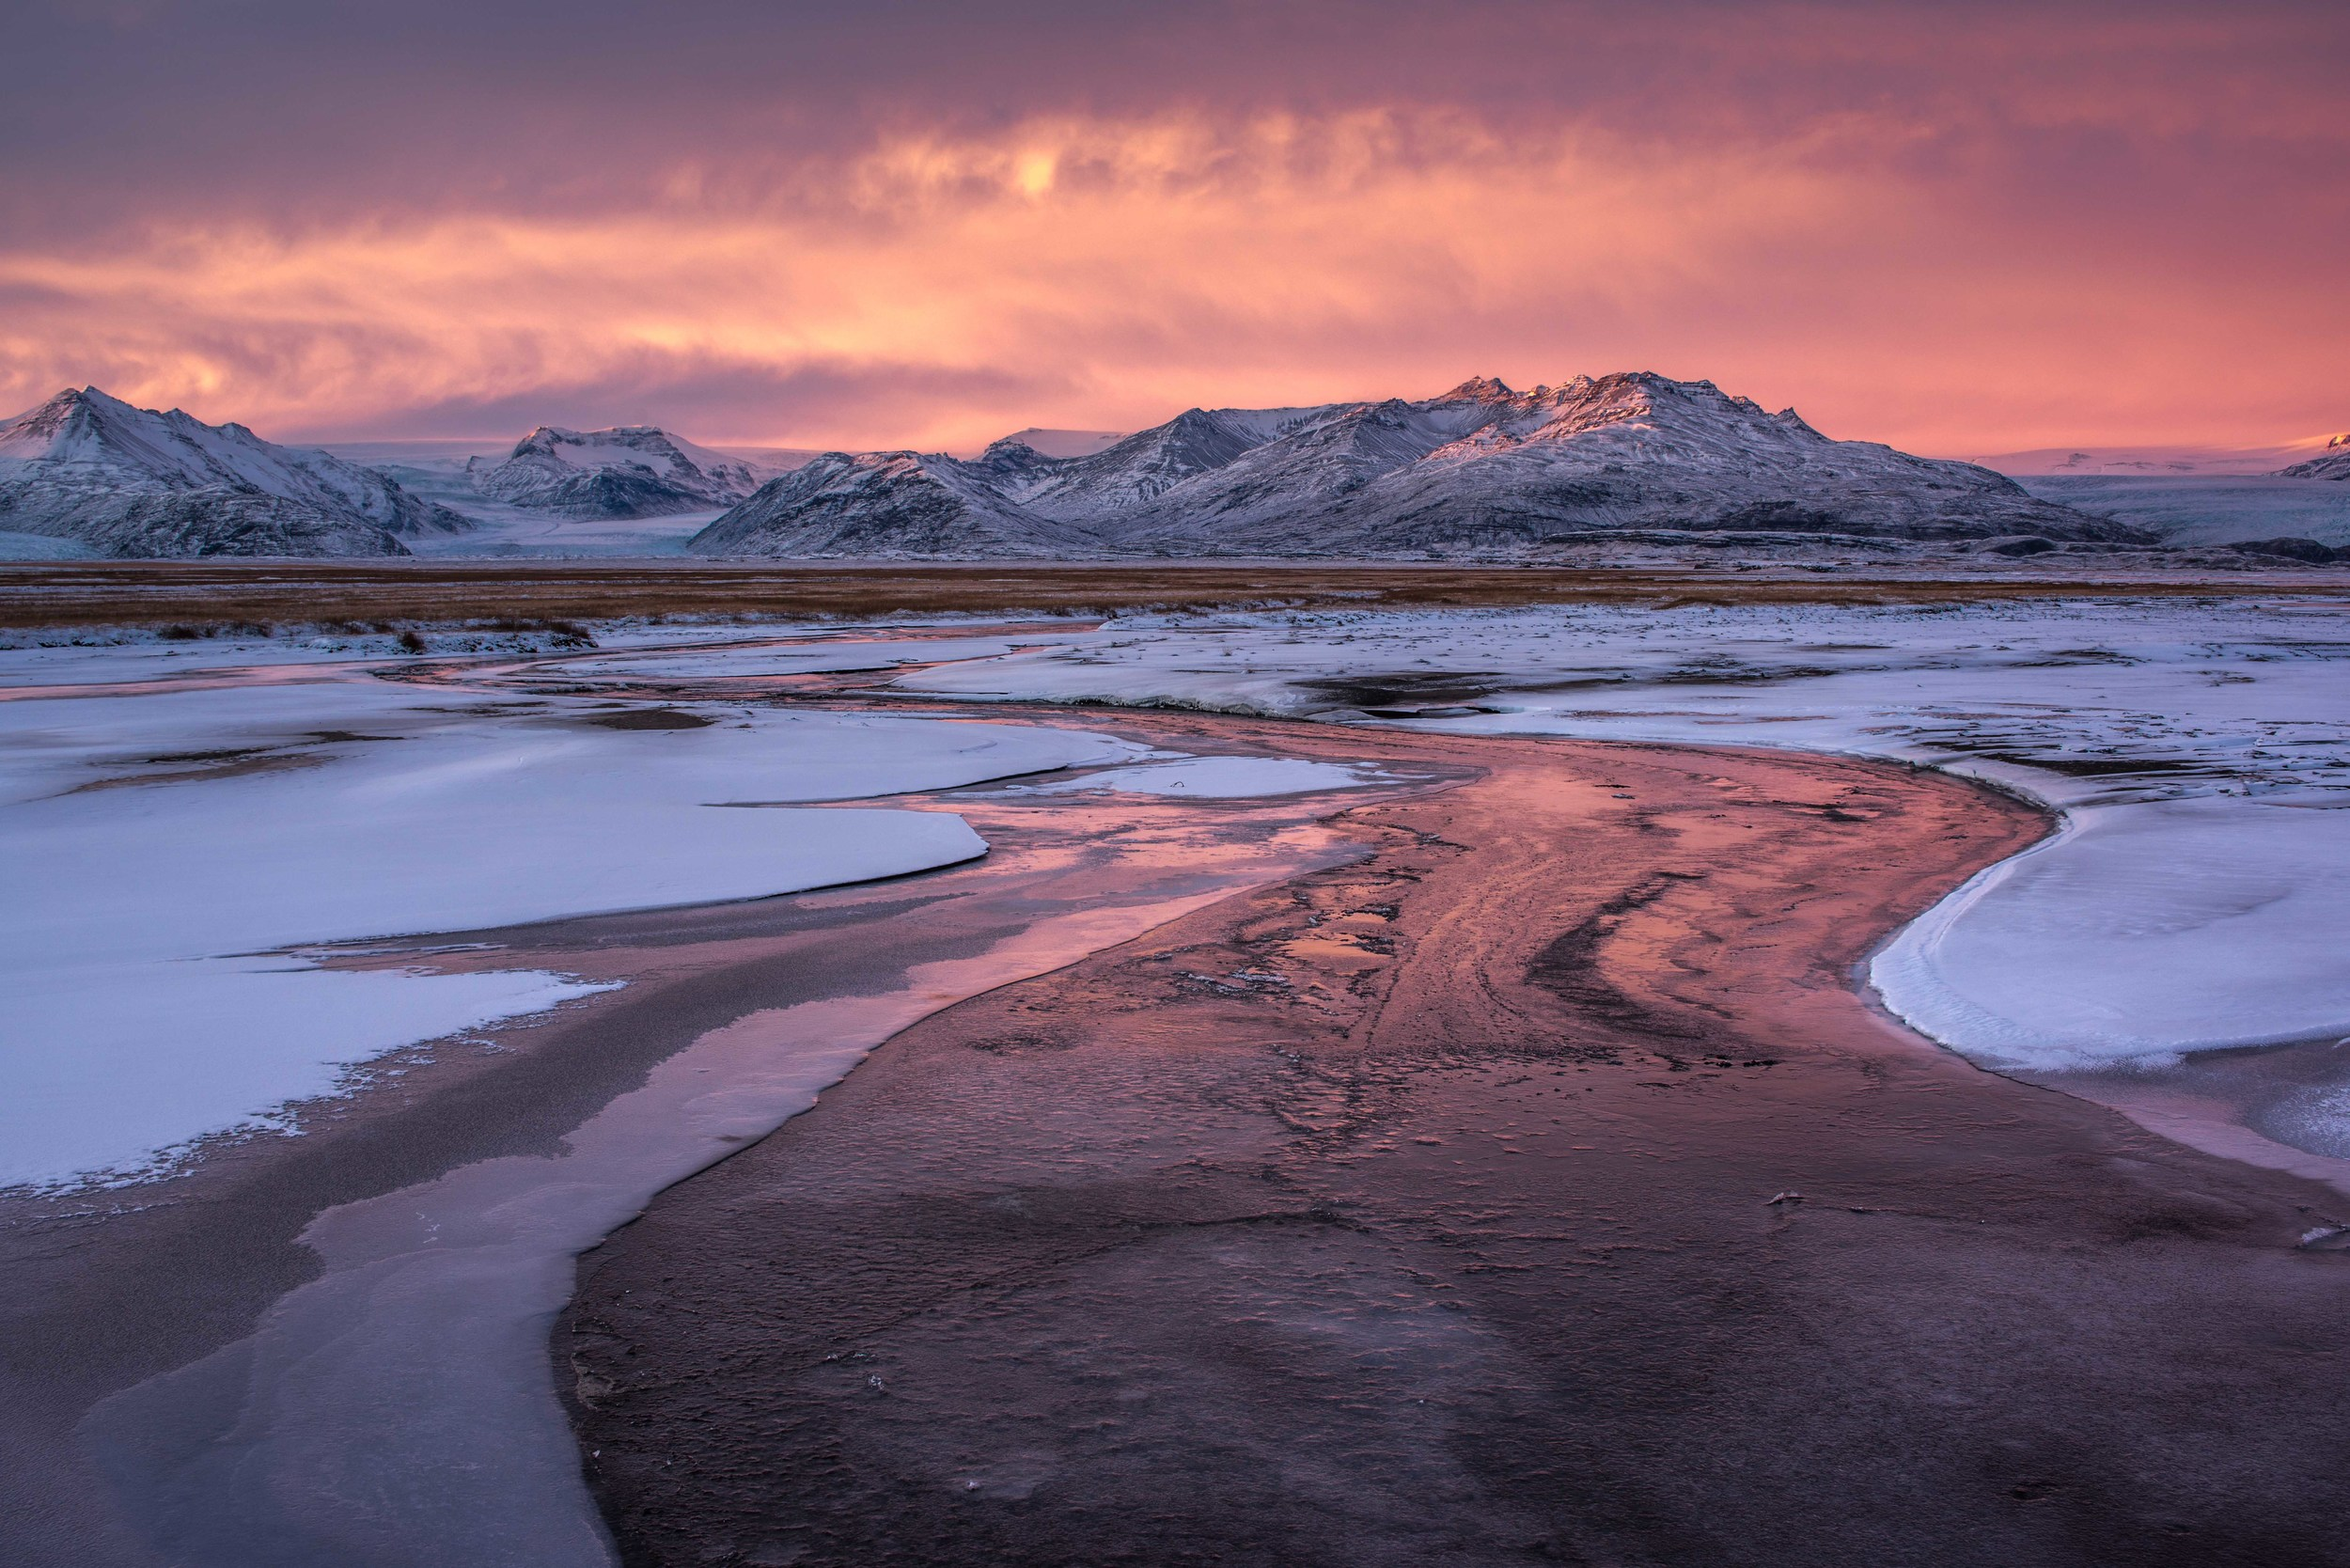 Sunset during Winter in Iceland with River and Reflection